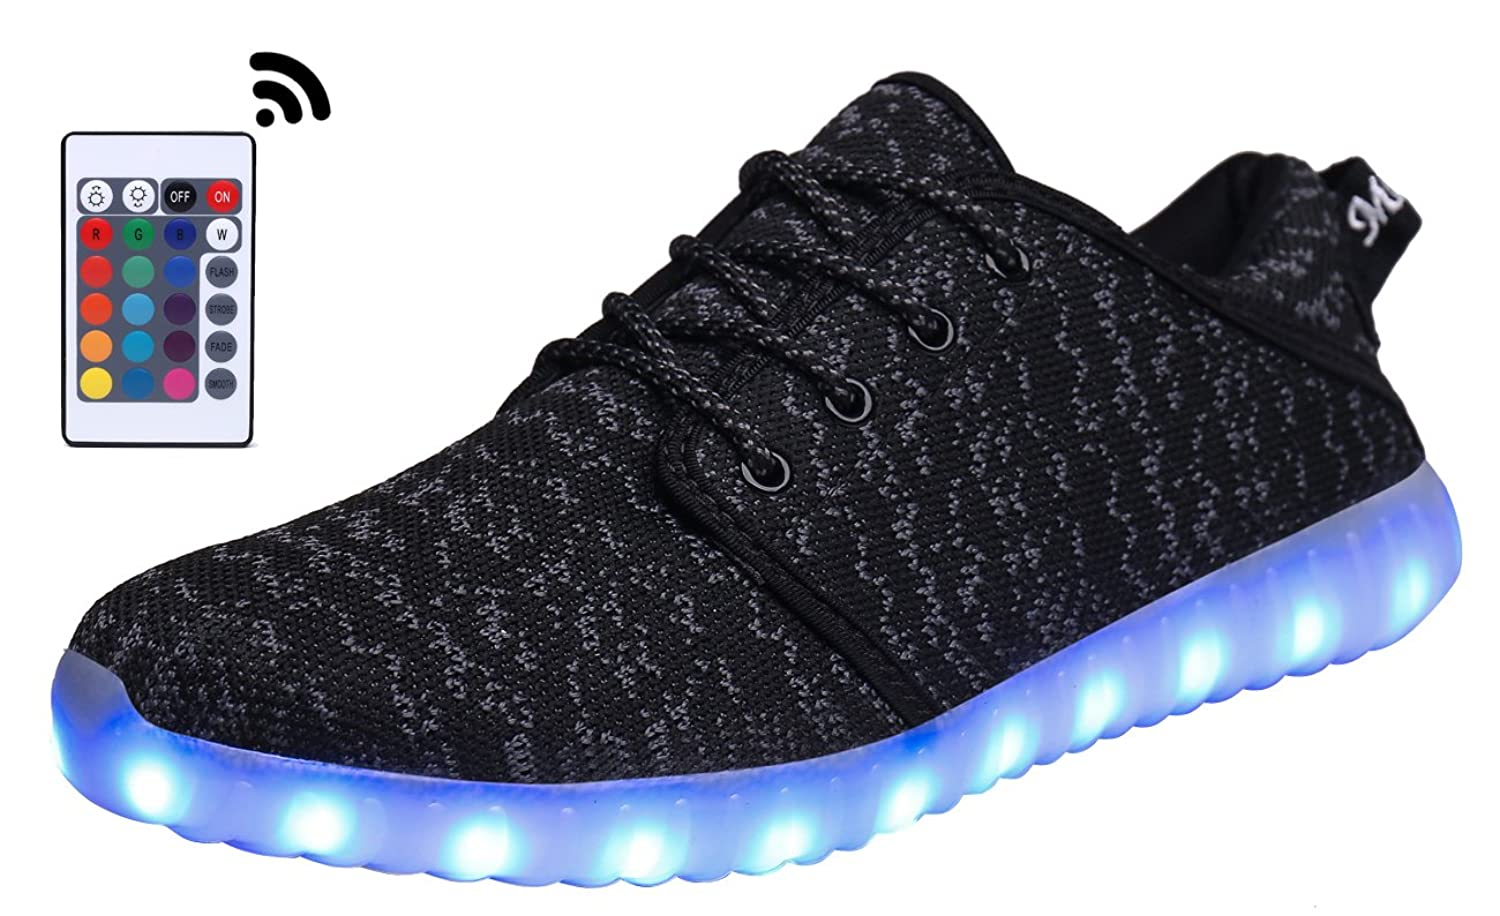 MOHEM ShinyNight LED Shoes Light Up USB Charging Flashing Sneakers